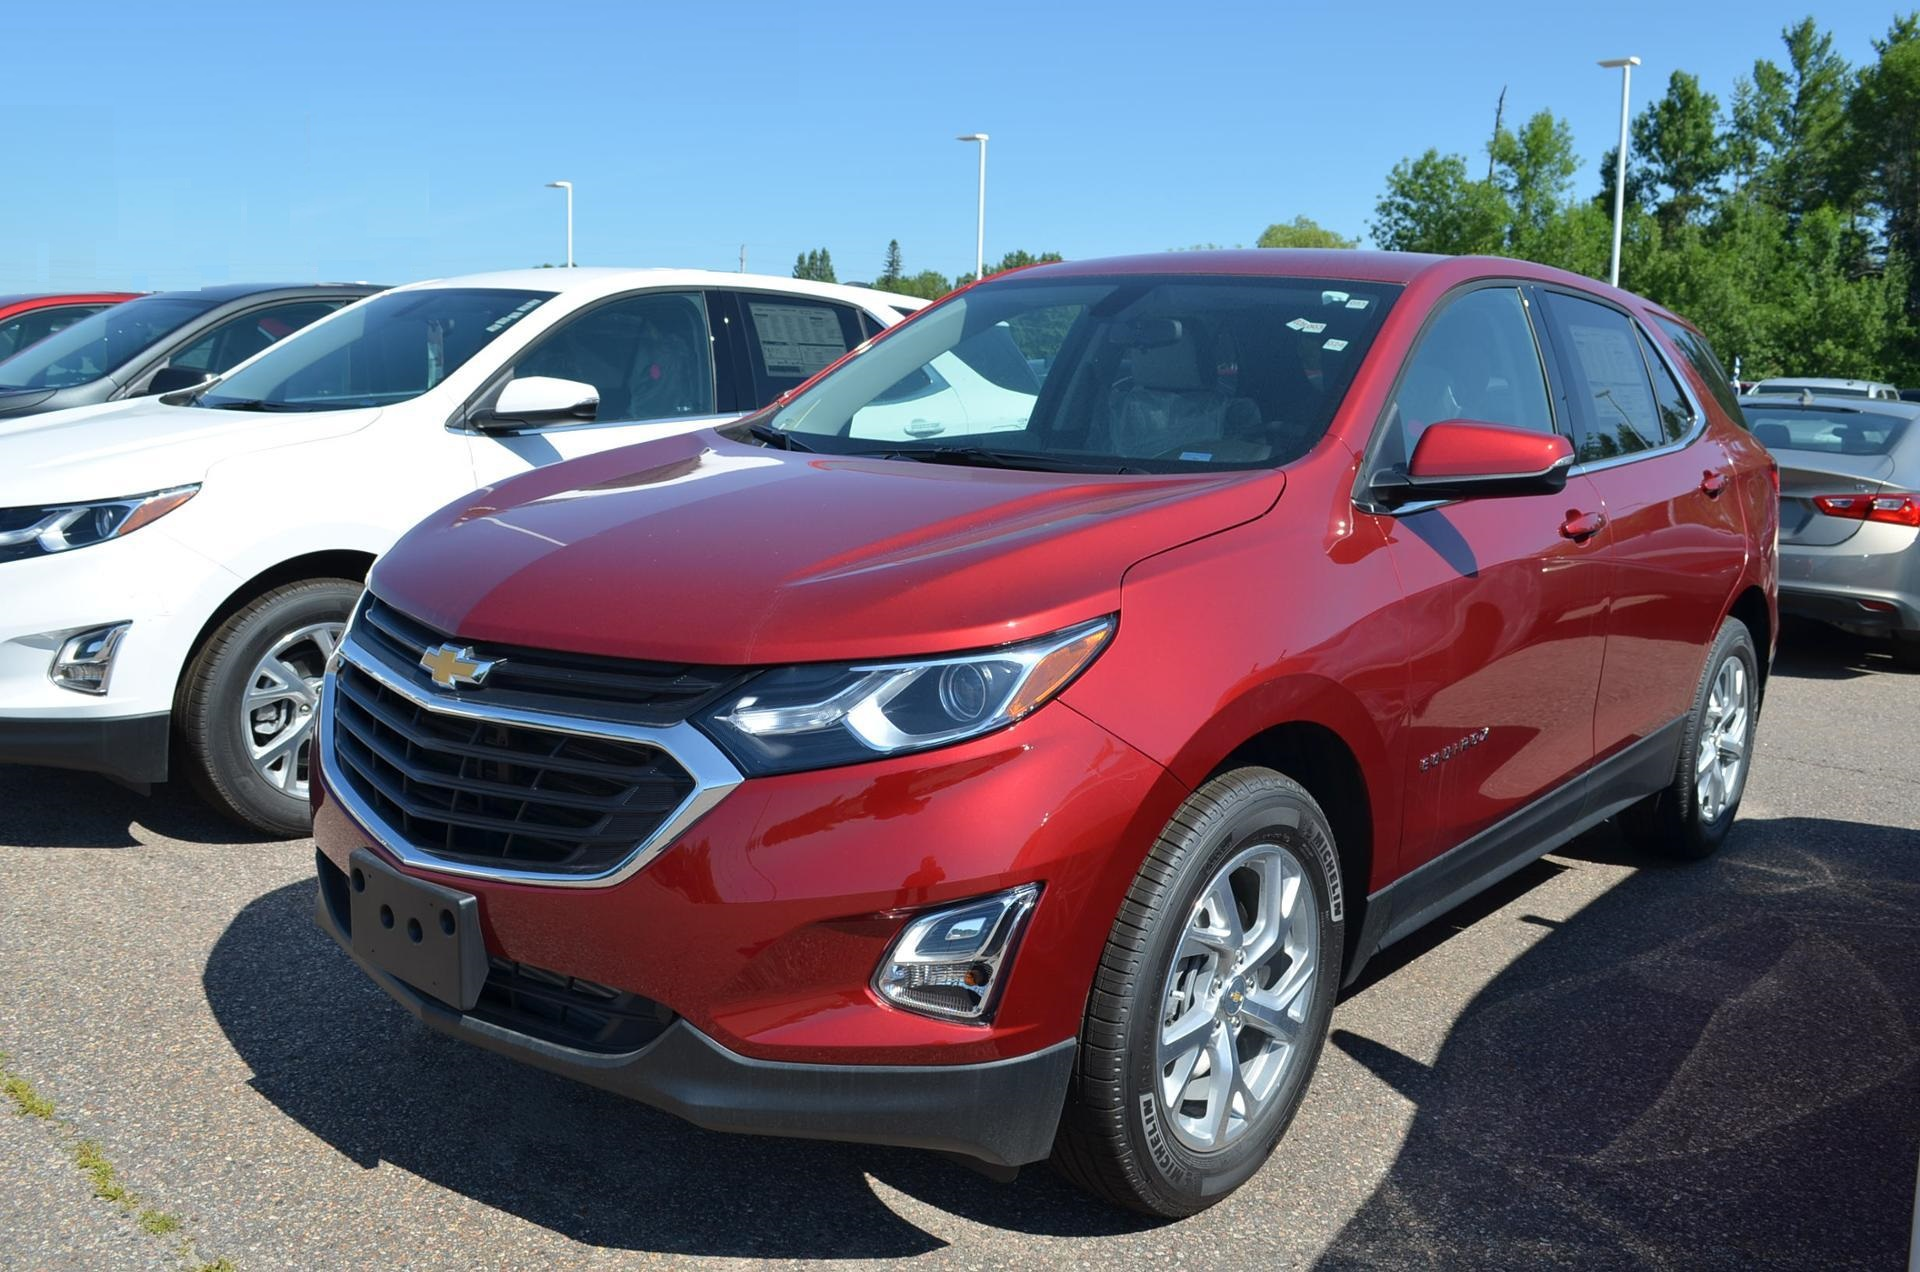 2018 Red Chevrolet Equinox Cars Made in Canada